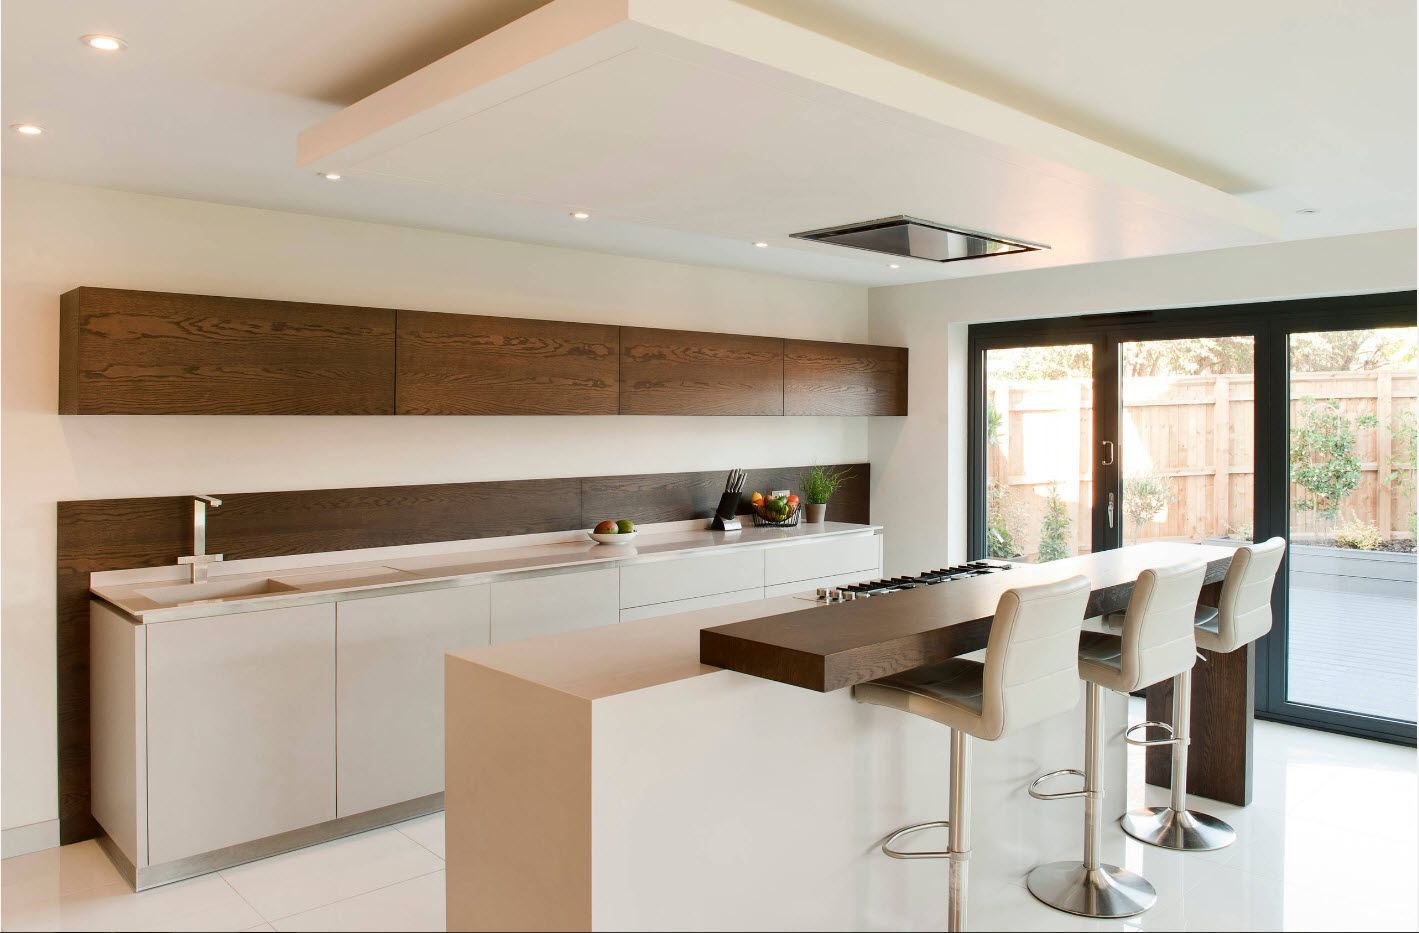 Wooden surfaces as a backsplash of spectacular design of the kitchen